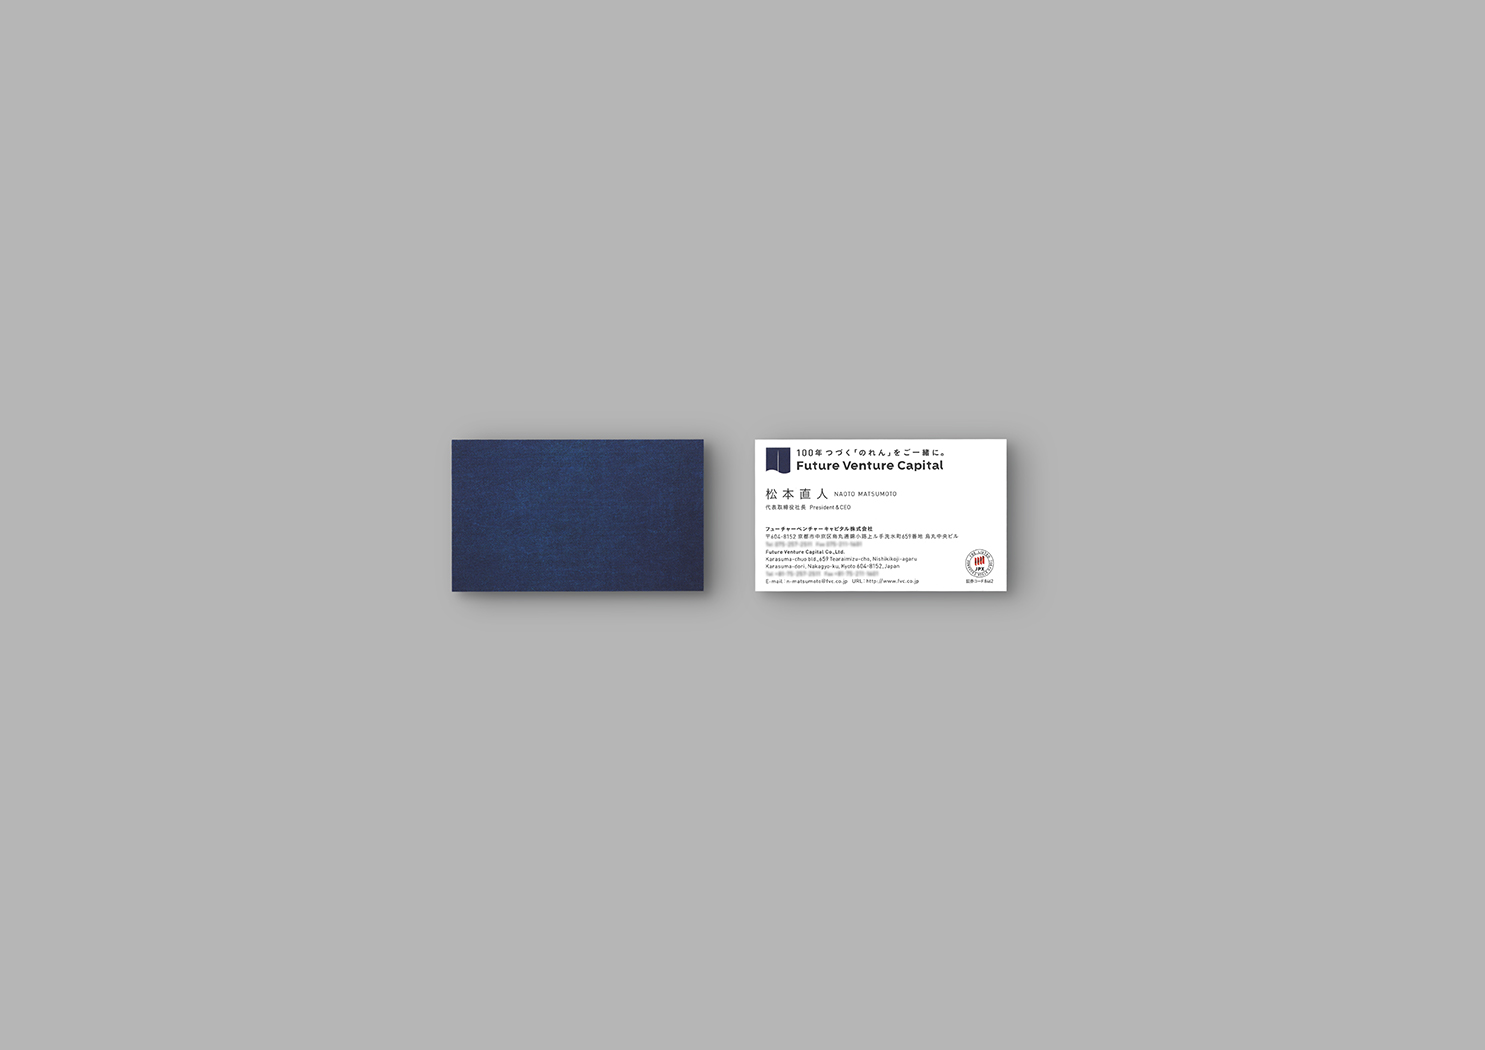 fvc Business card